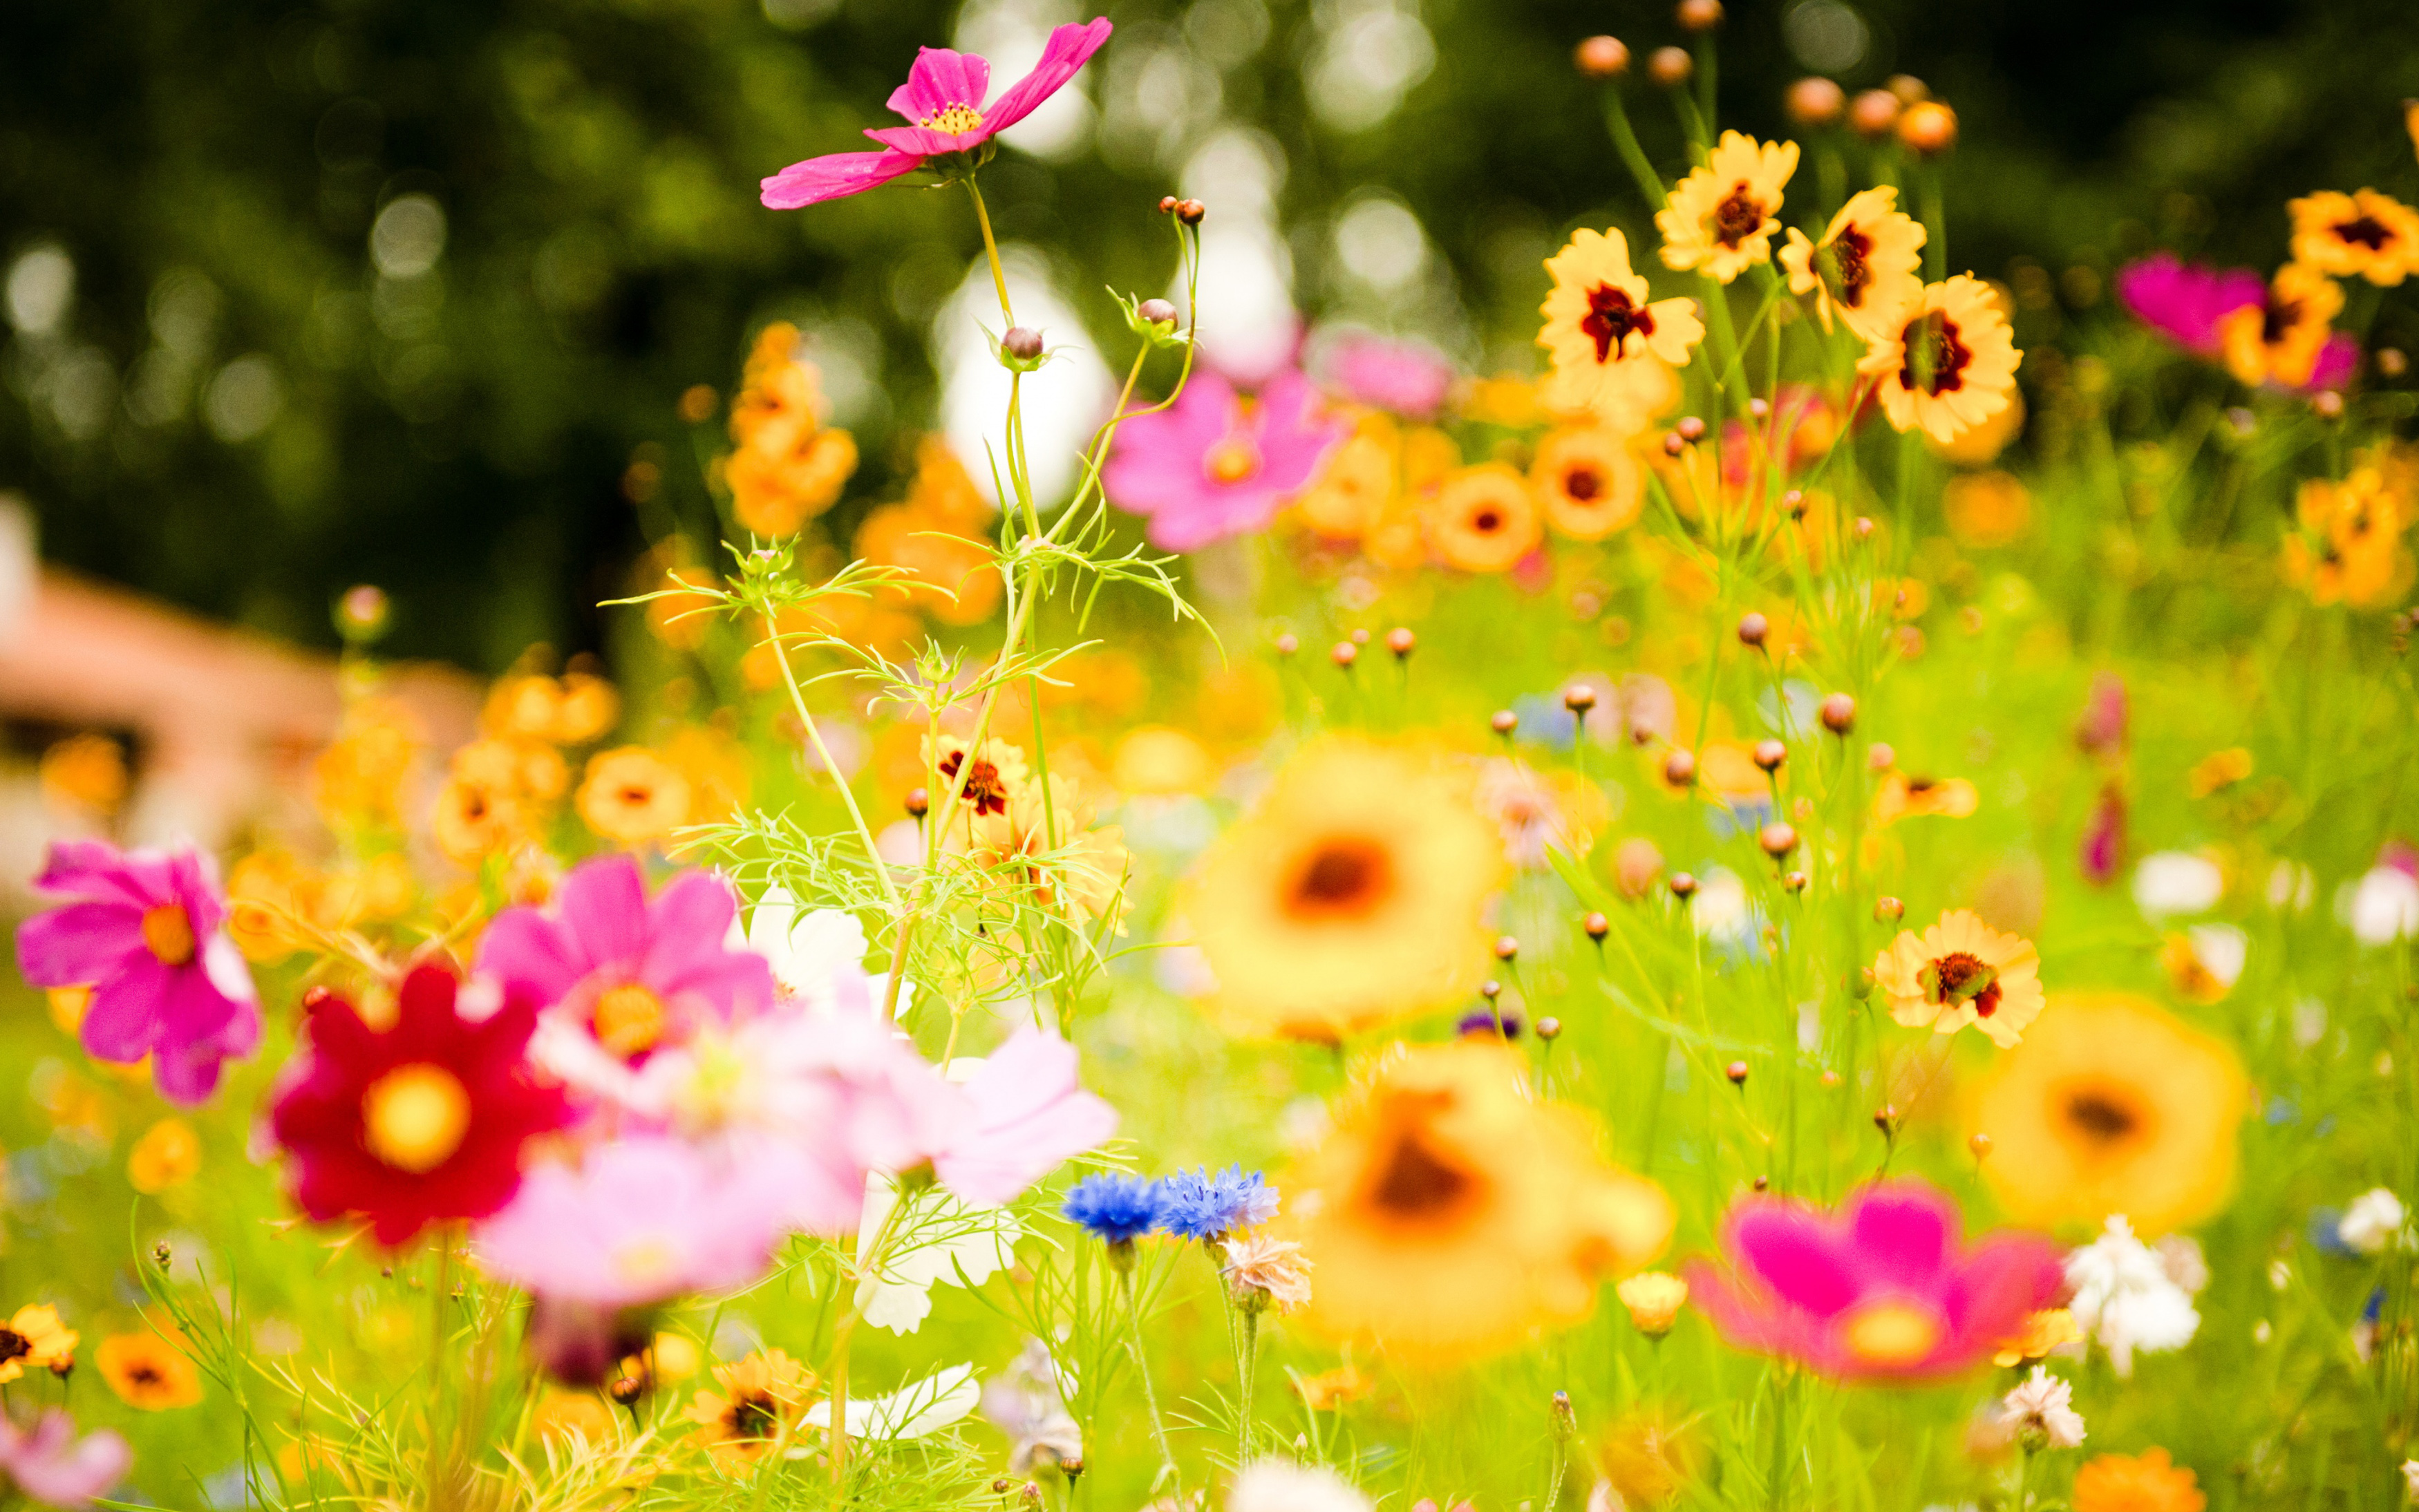 Picture offlowers png 17 Best images about Flowers on Pinterest | Pictures of flowers ... png